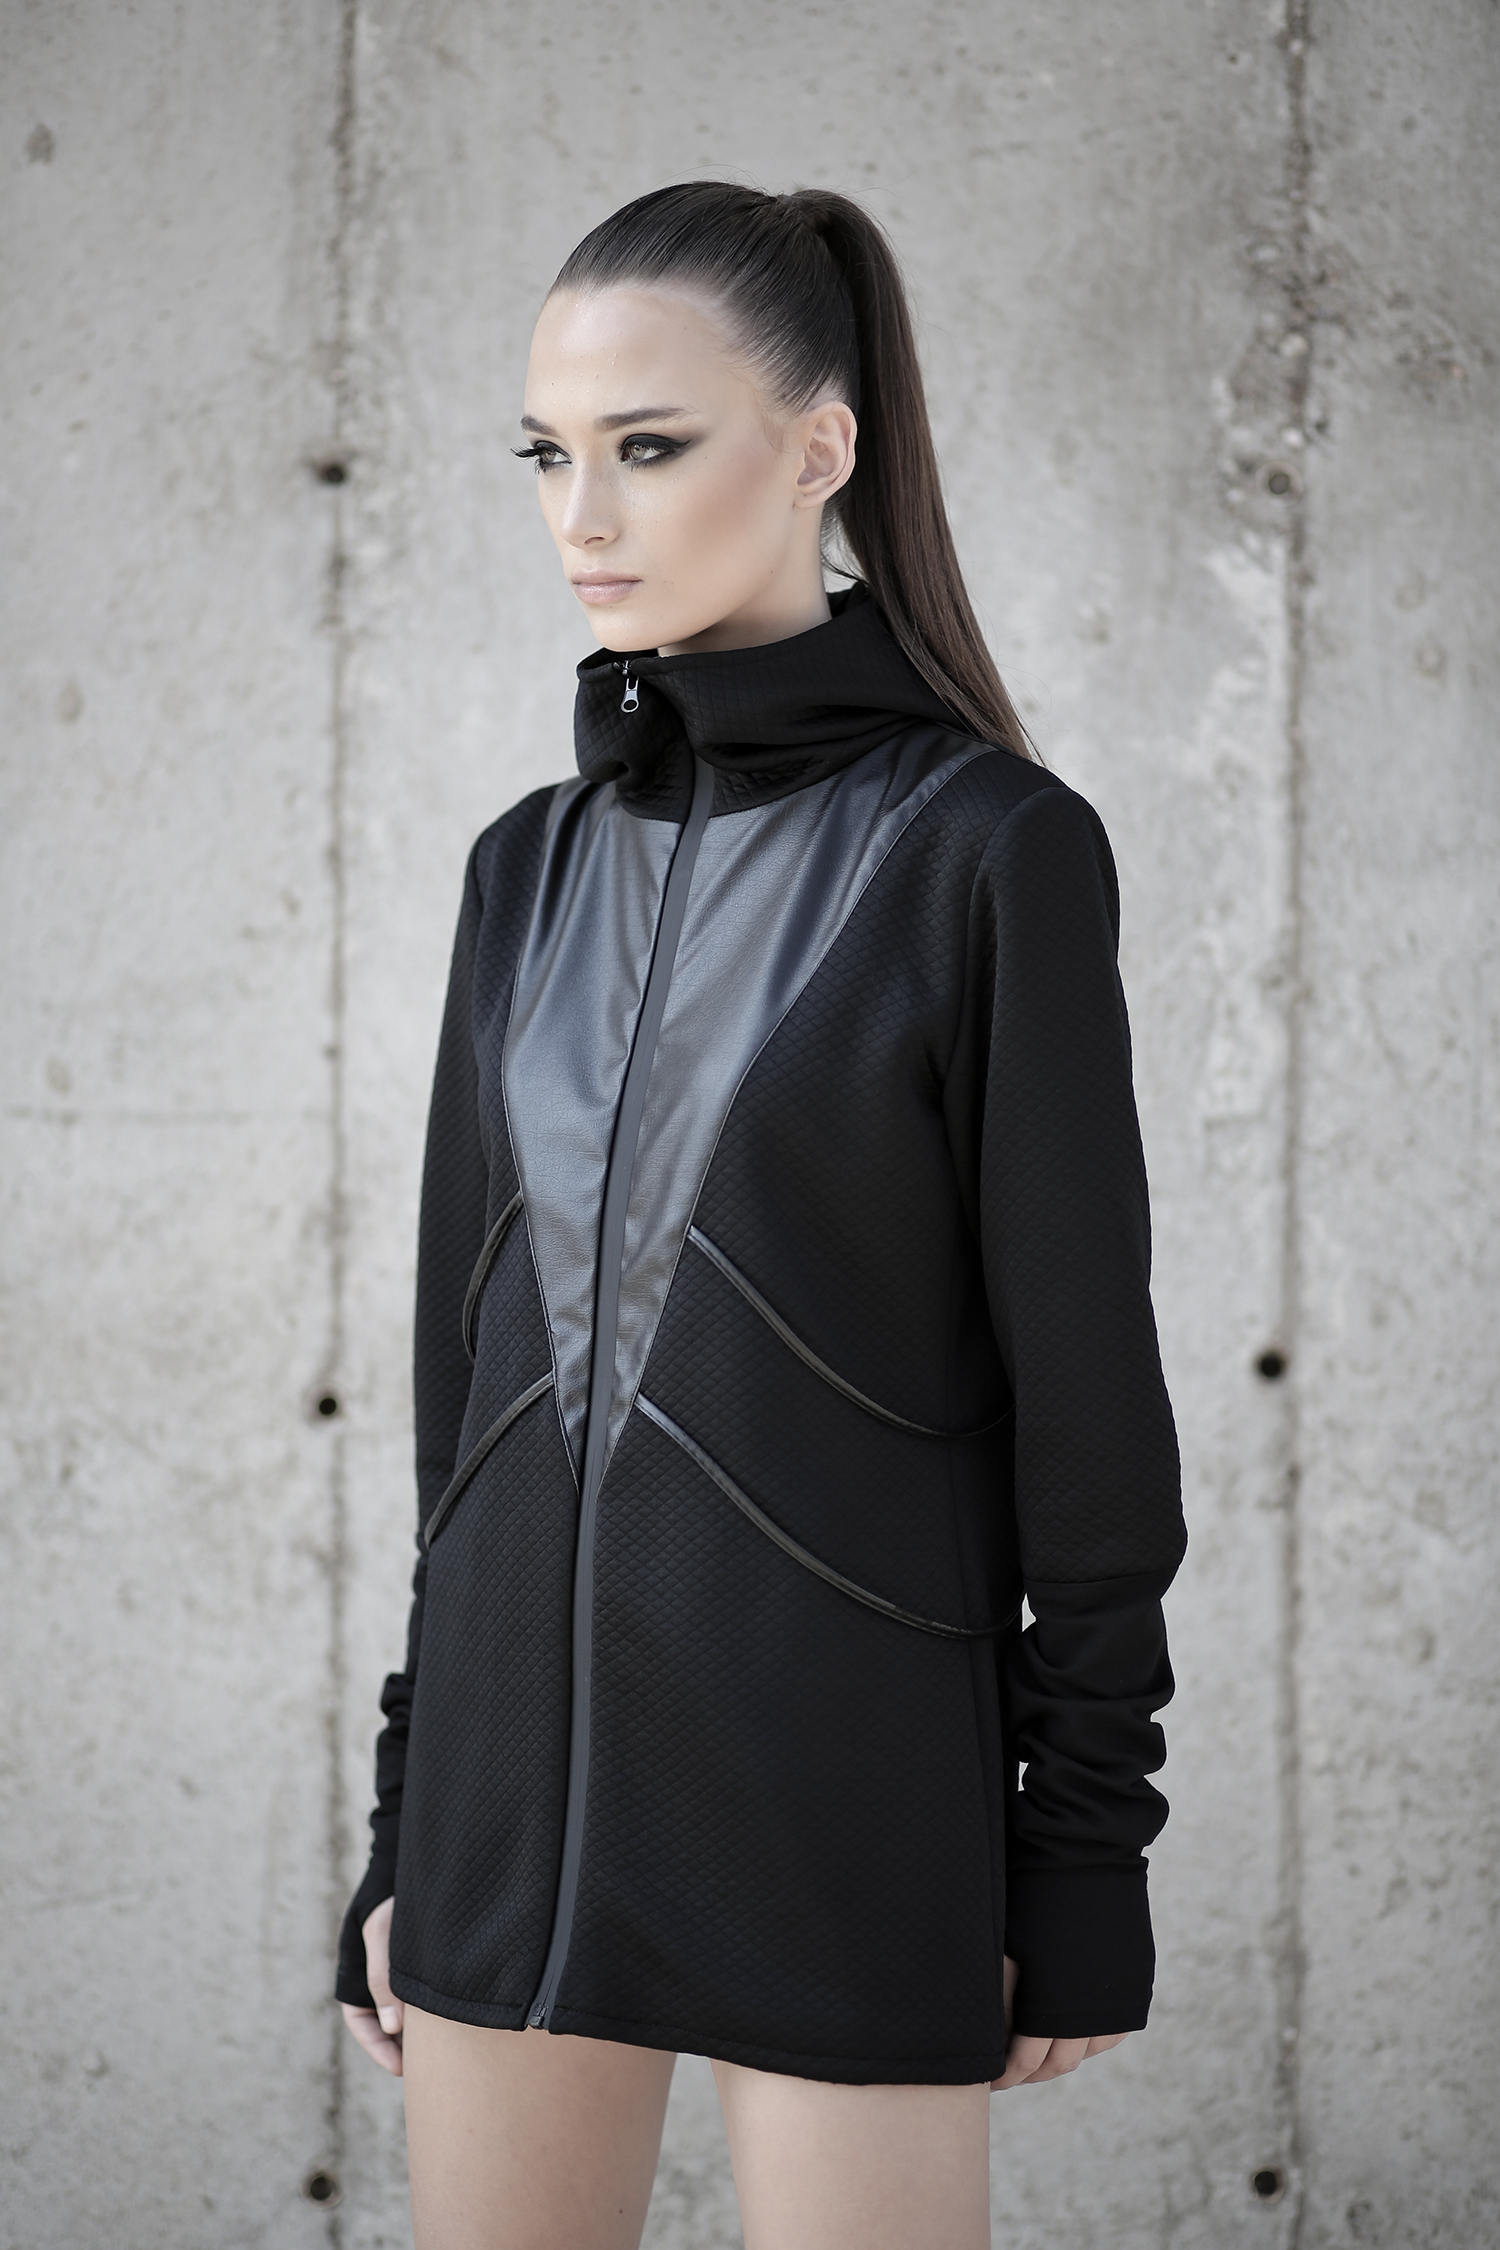 Women jacket designed with faux leather and lining. No pockets. Its fashion-forward look and alternative style help women stand out.